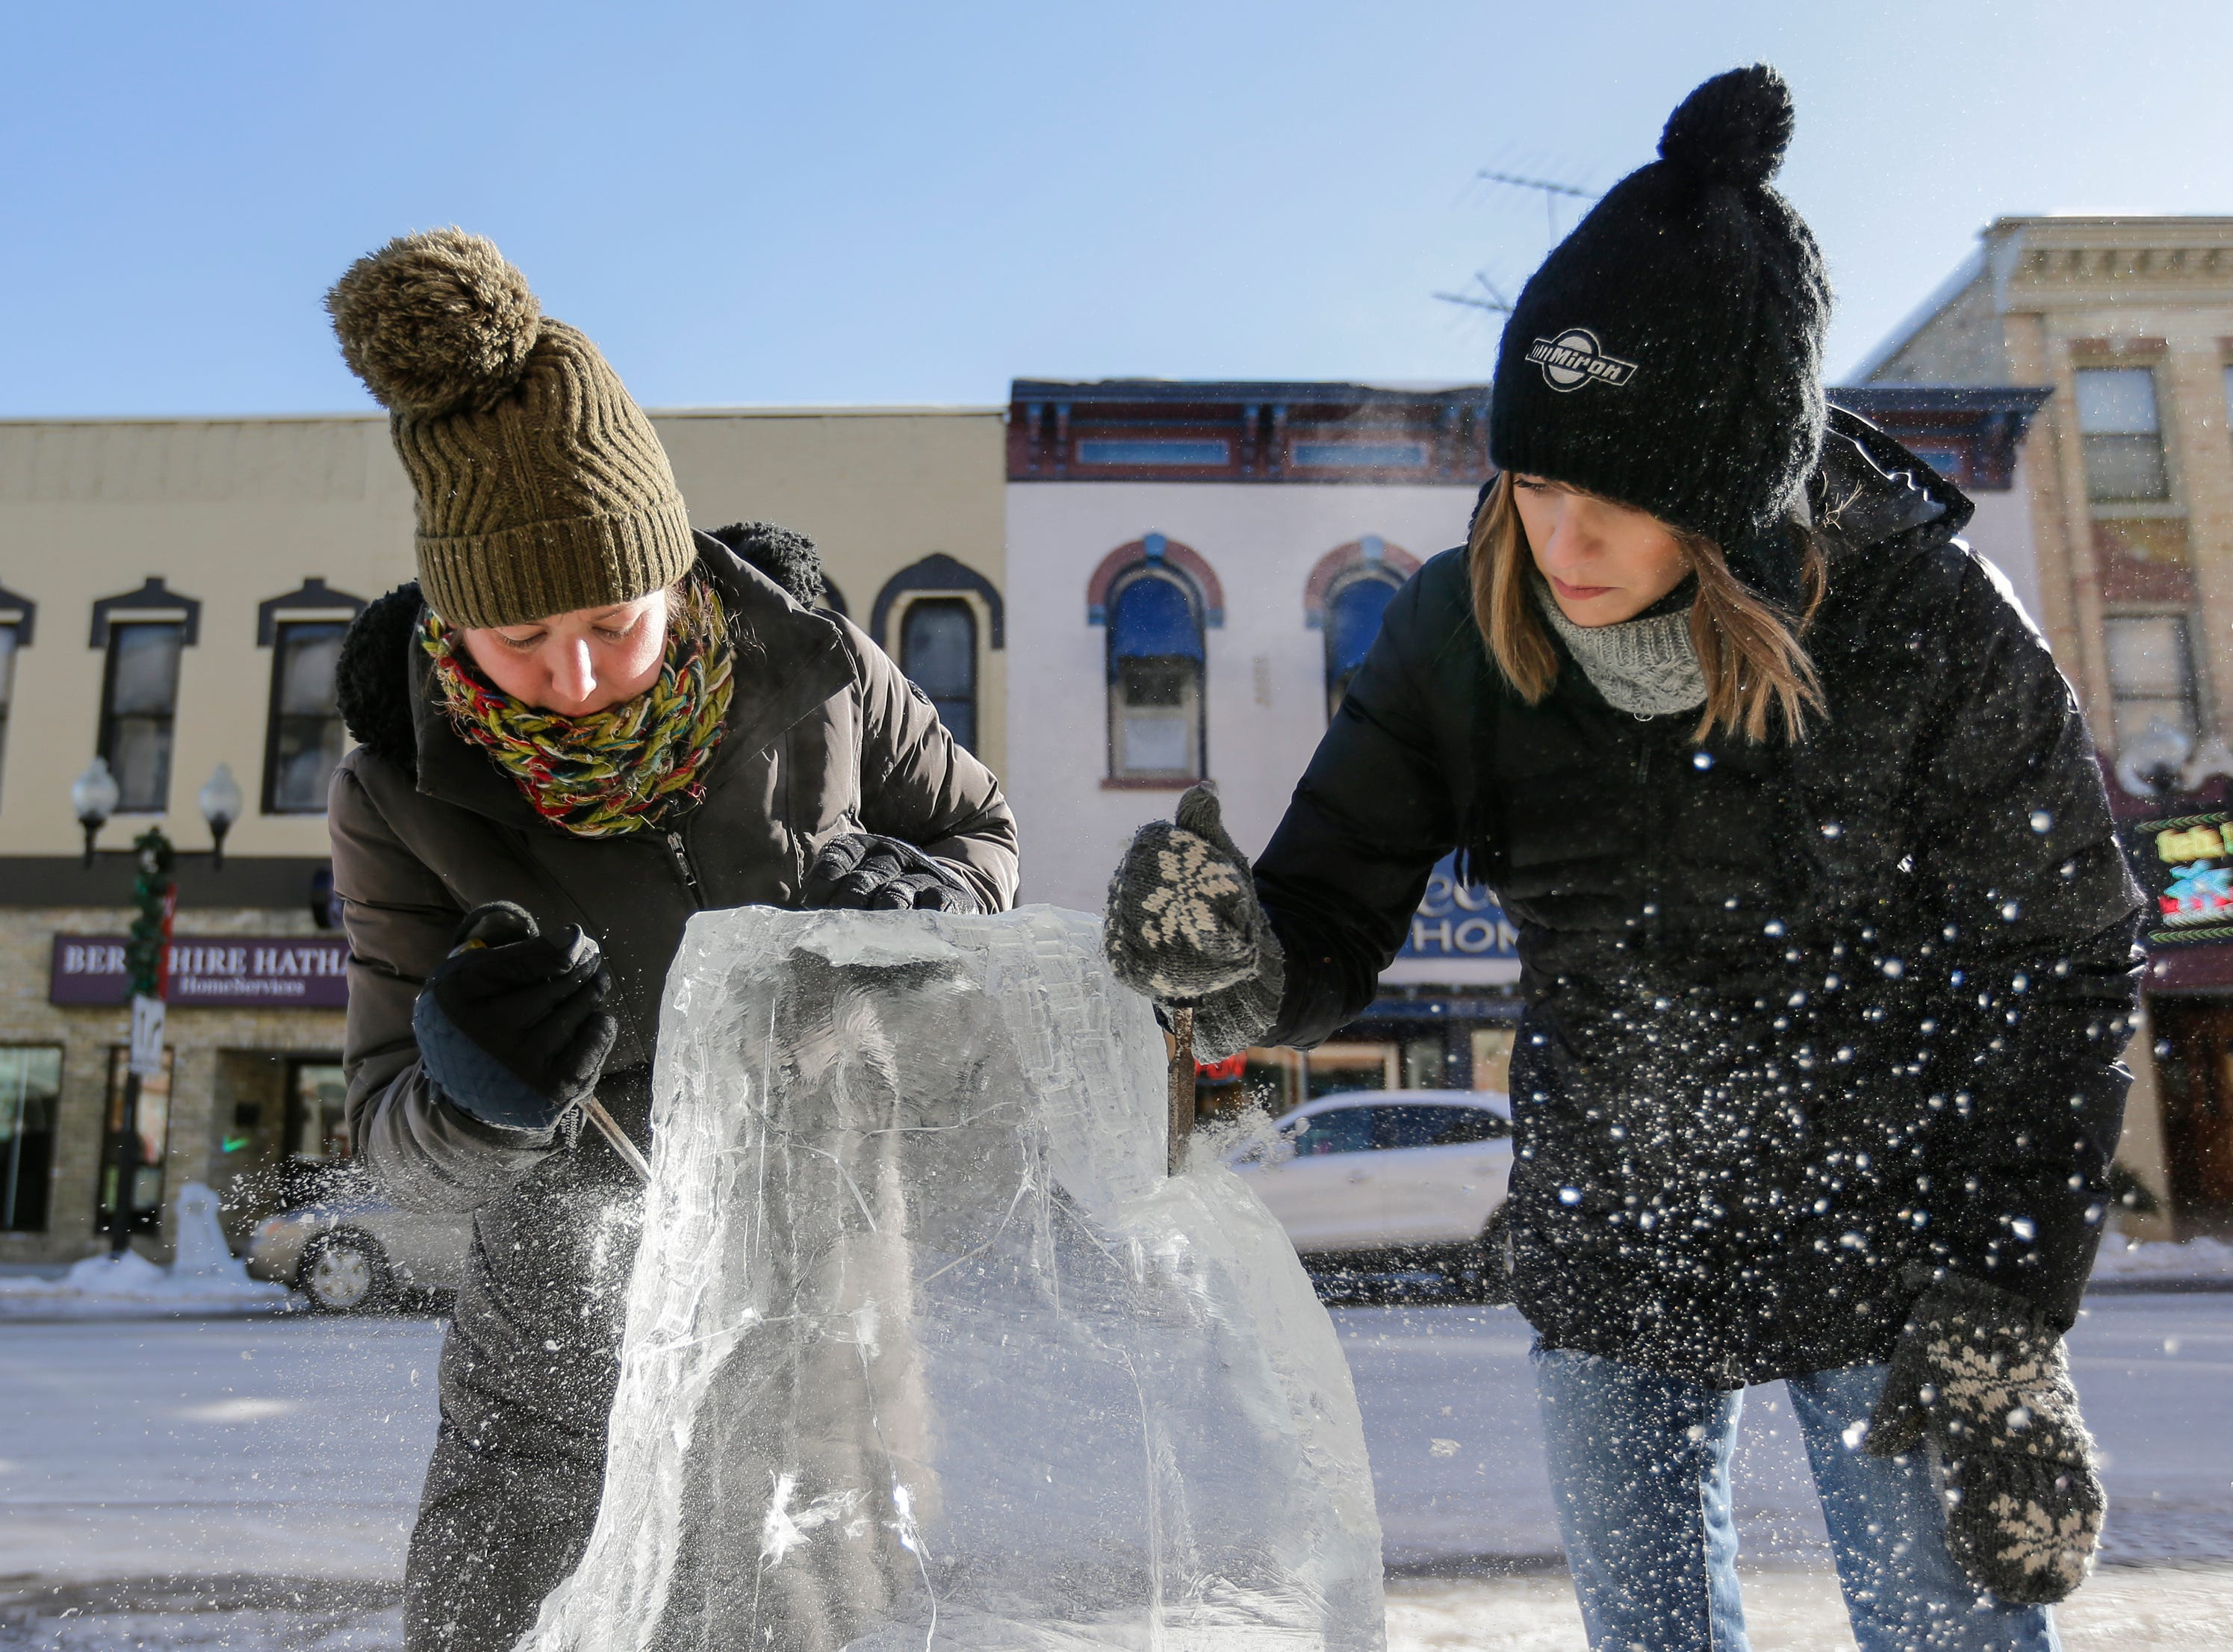 Erin LaBonte, left, and Cassie Hebert work on an ice sculpture during Winter Fest Saturday, February 9, 2019, in Manitowoc, Wis. Joshua Clark/USA TODAY NETWORK-Wisconsin